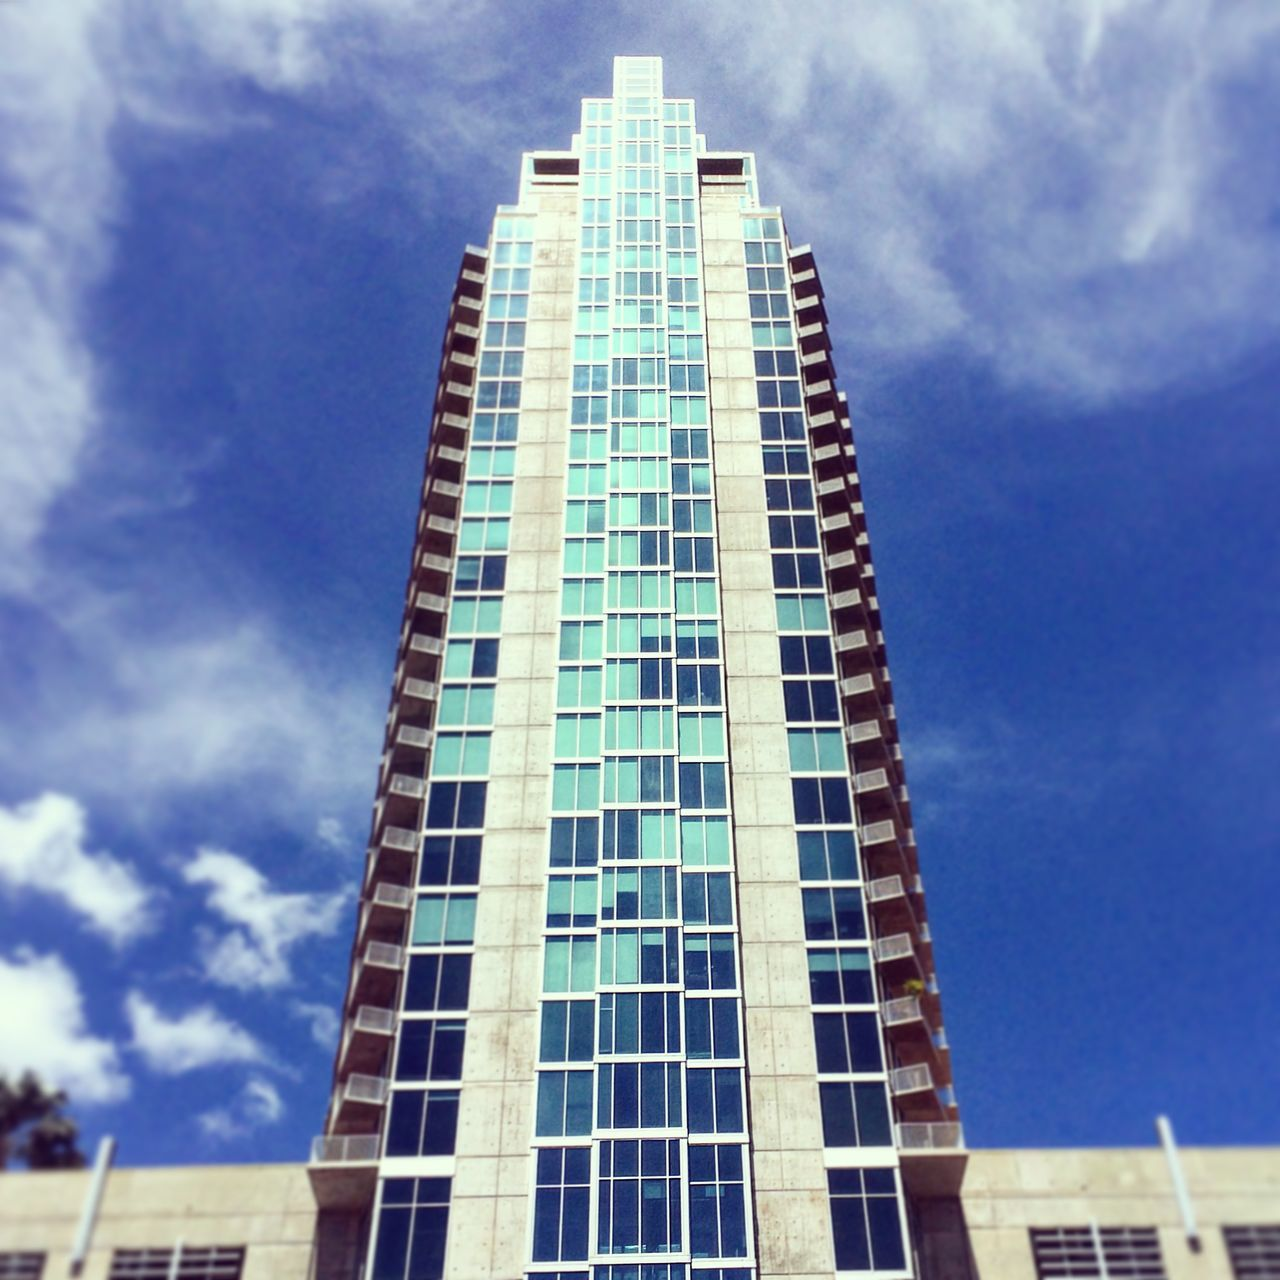 Up! Tampa Architecture Building Florida Sky Blue Enjoying The Sights Enjoying Life Taking Photos The Architect - 2015 EyeEm Awards The Architect - 2017 EyeEm Awards